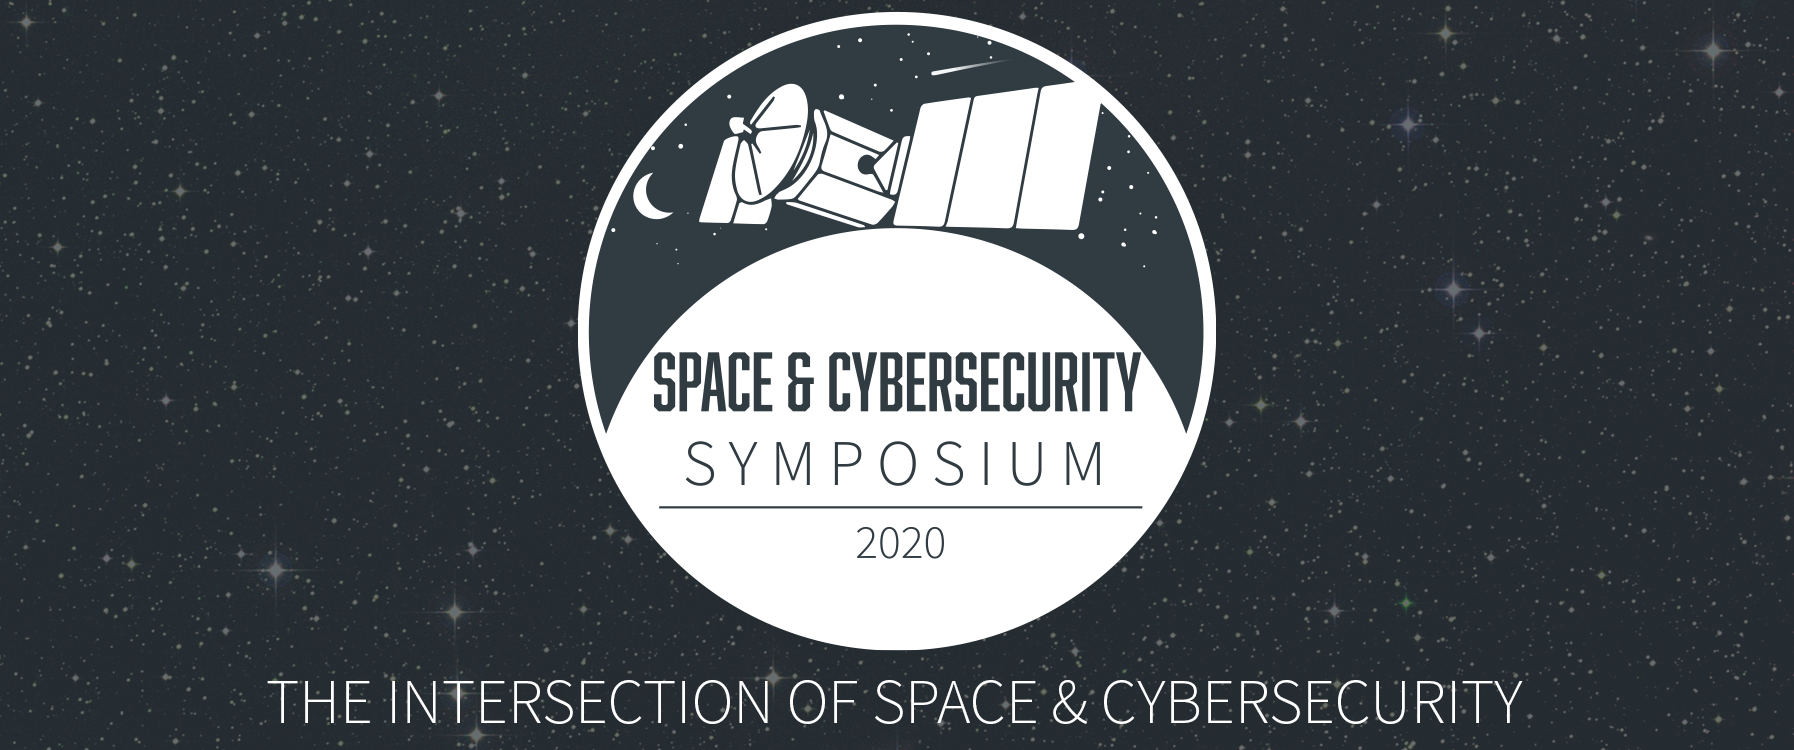 Space & Cybersecurity Symposium - The Intersection of Space & Cybersecurity.